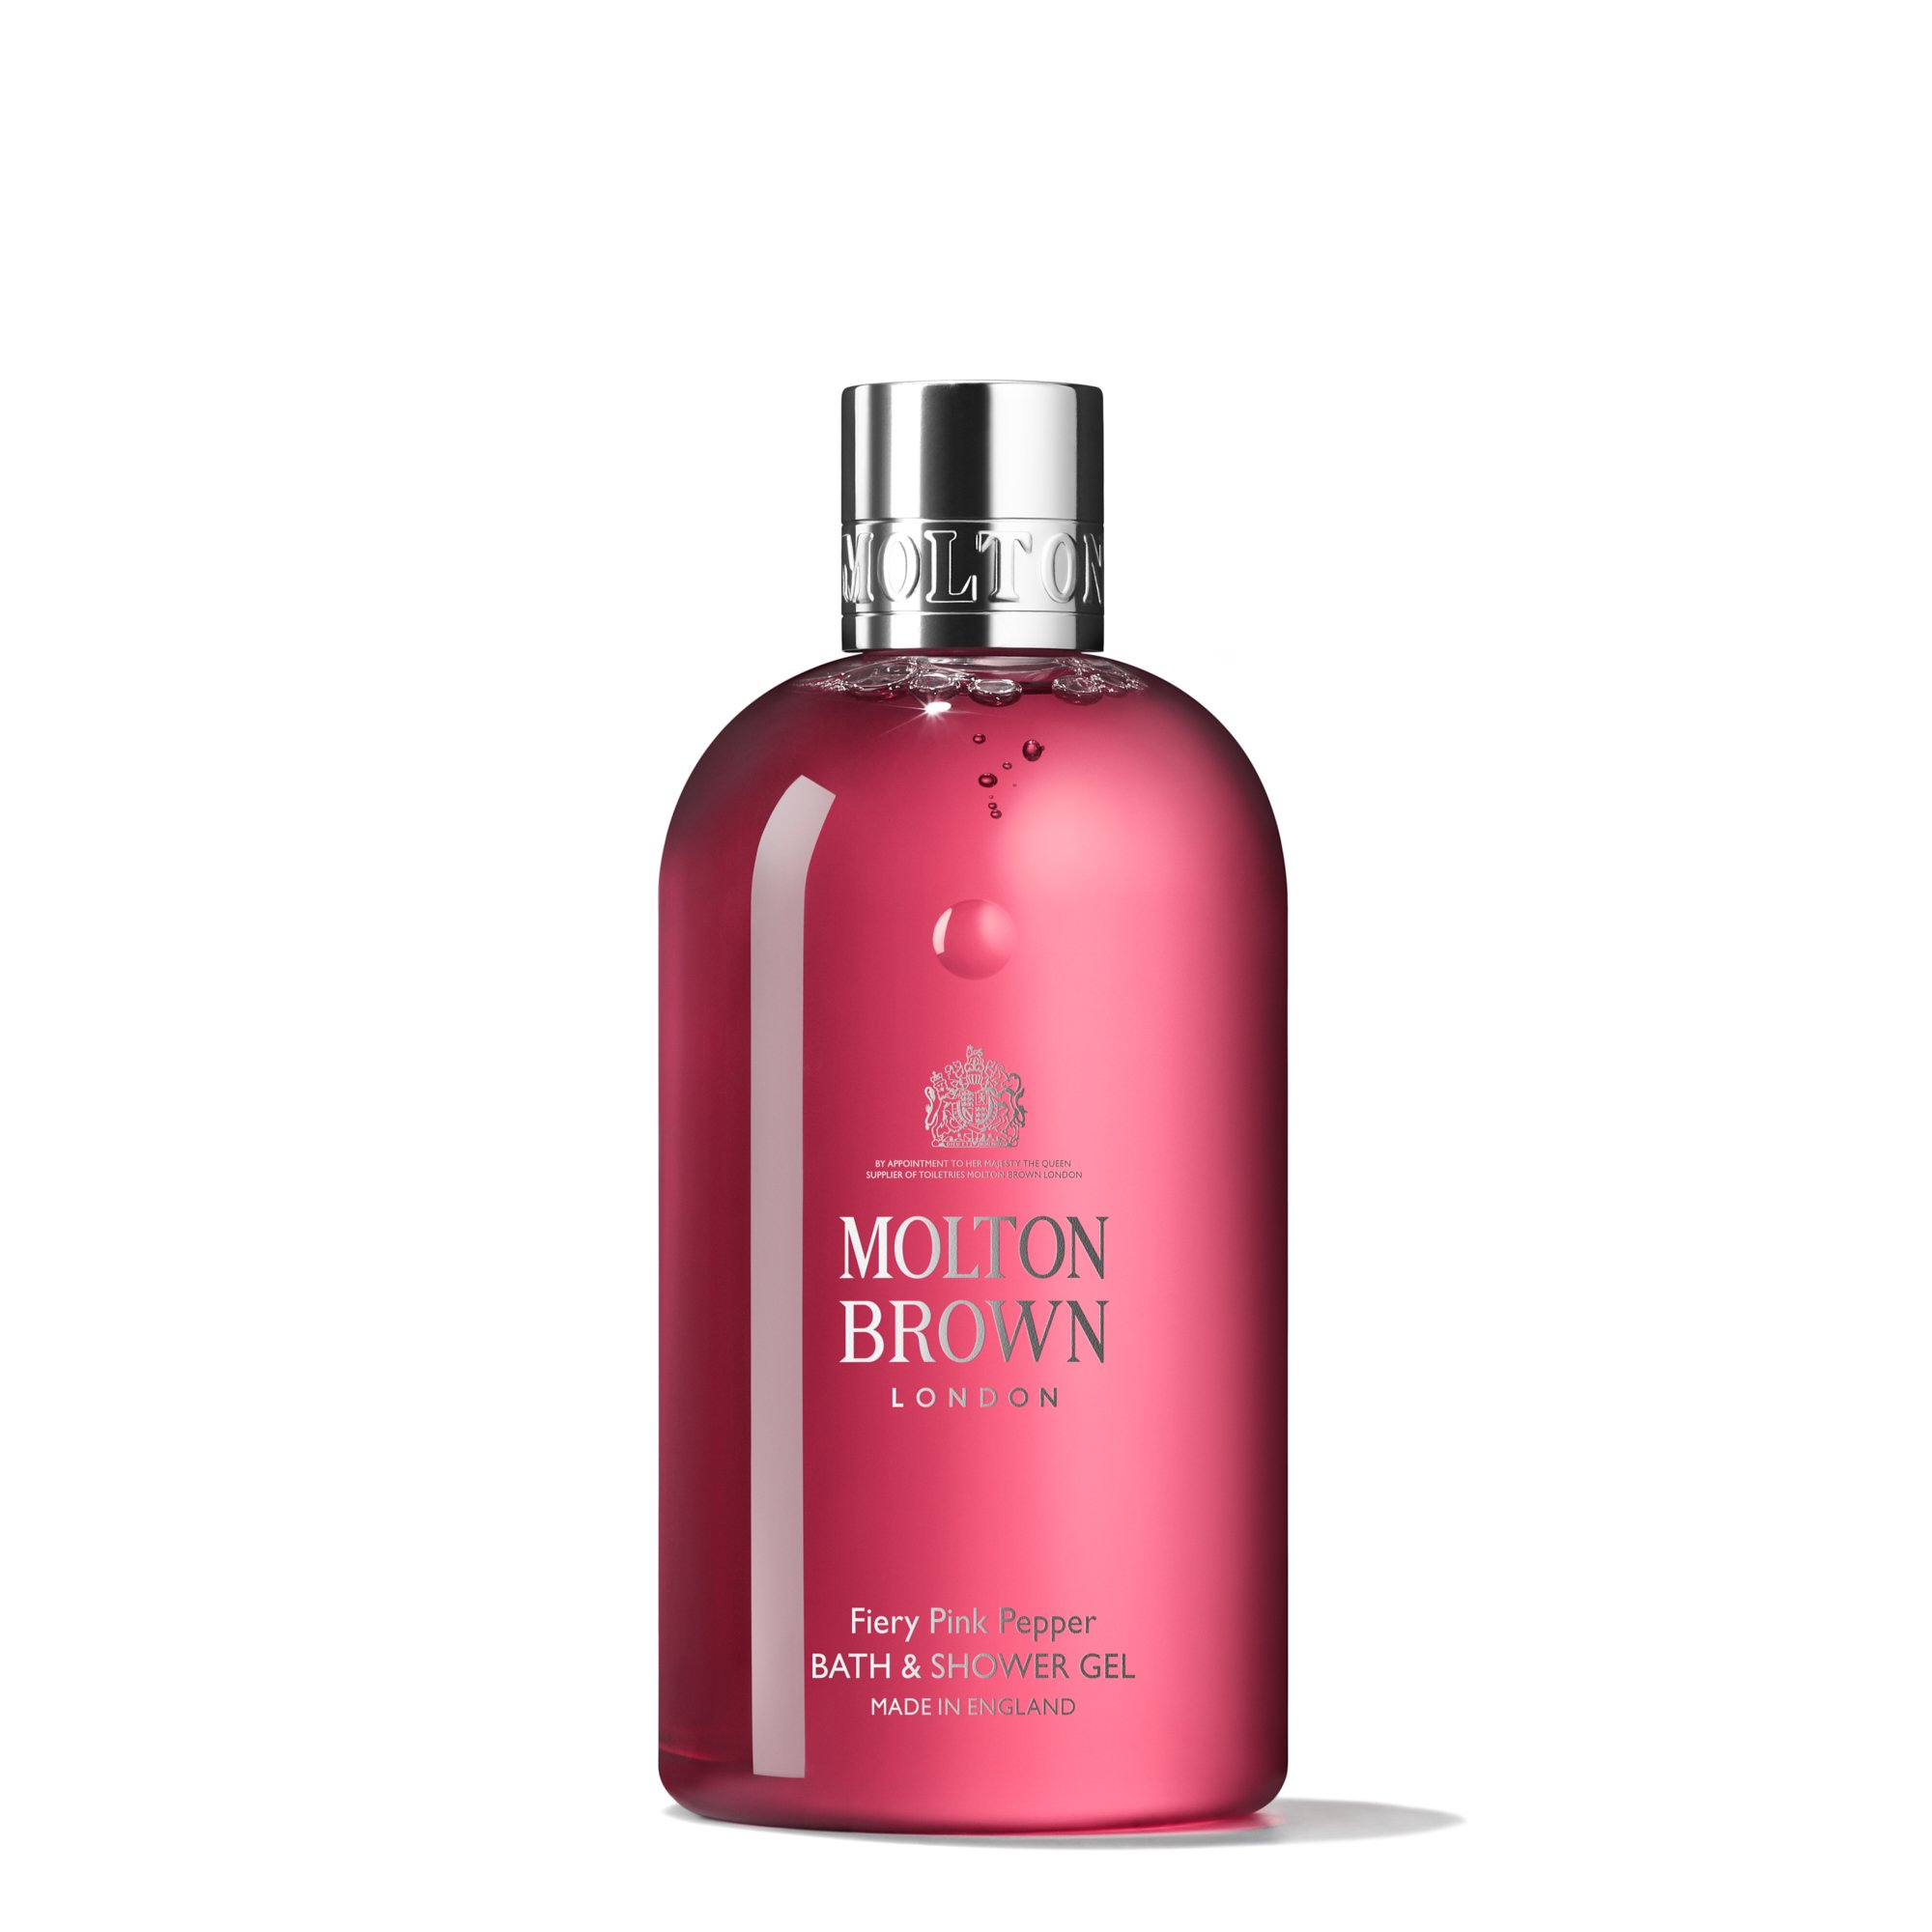 Molton Brown Fiery Pink Pepper Bath & Shower Gel